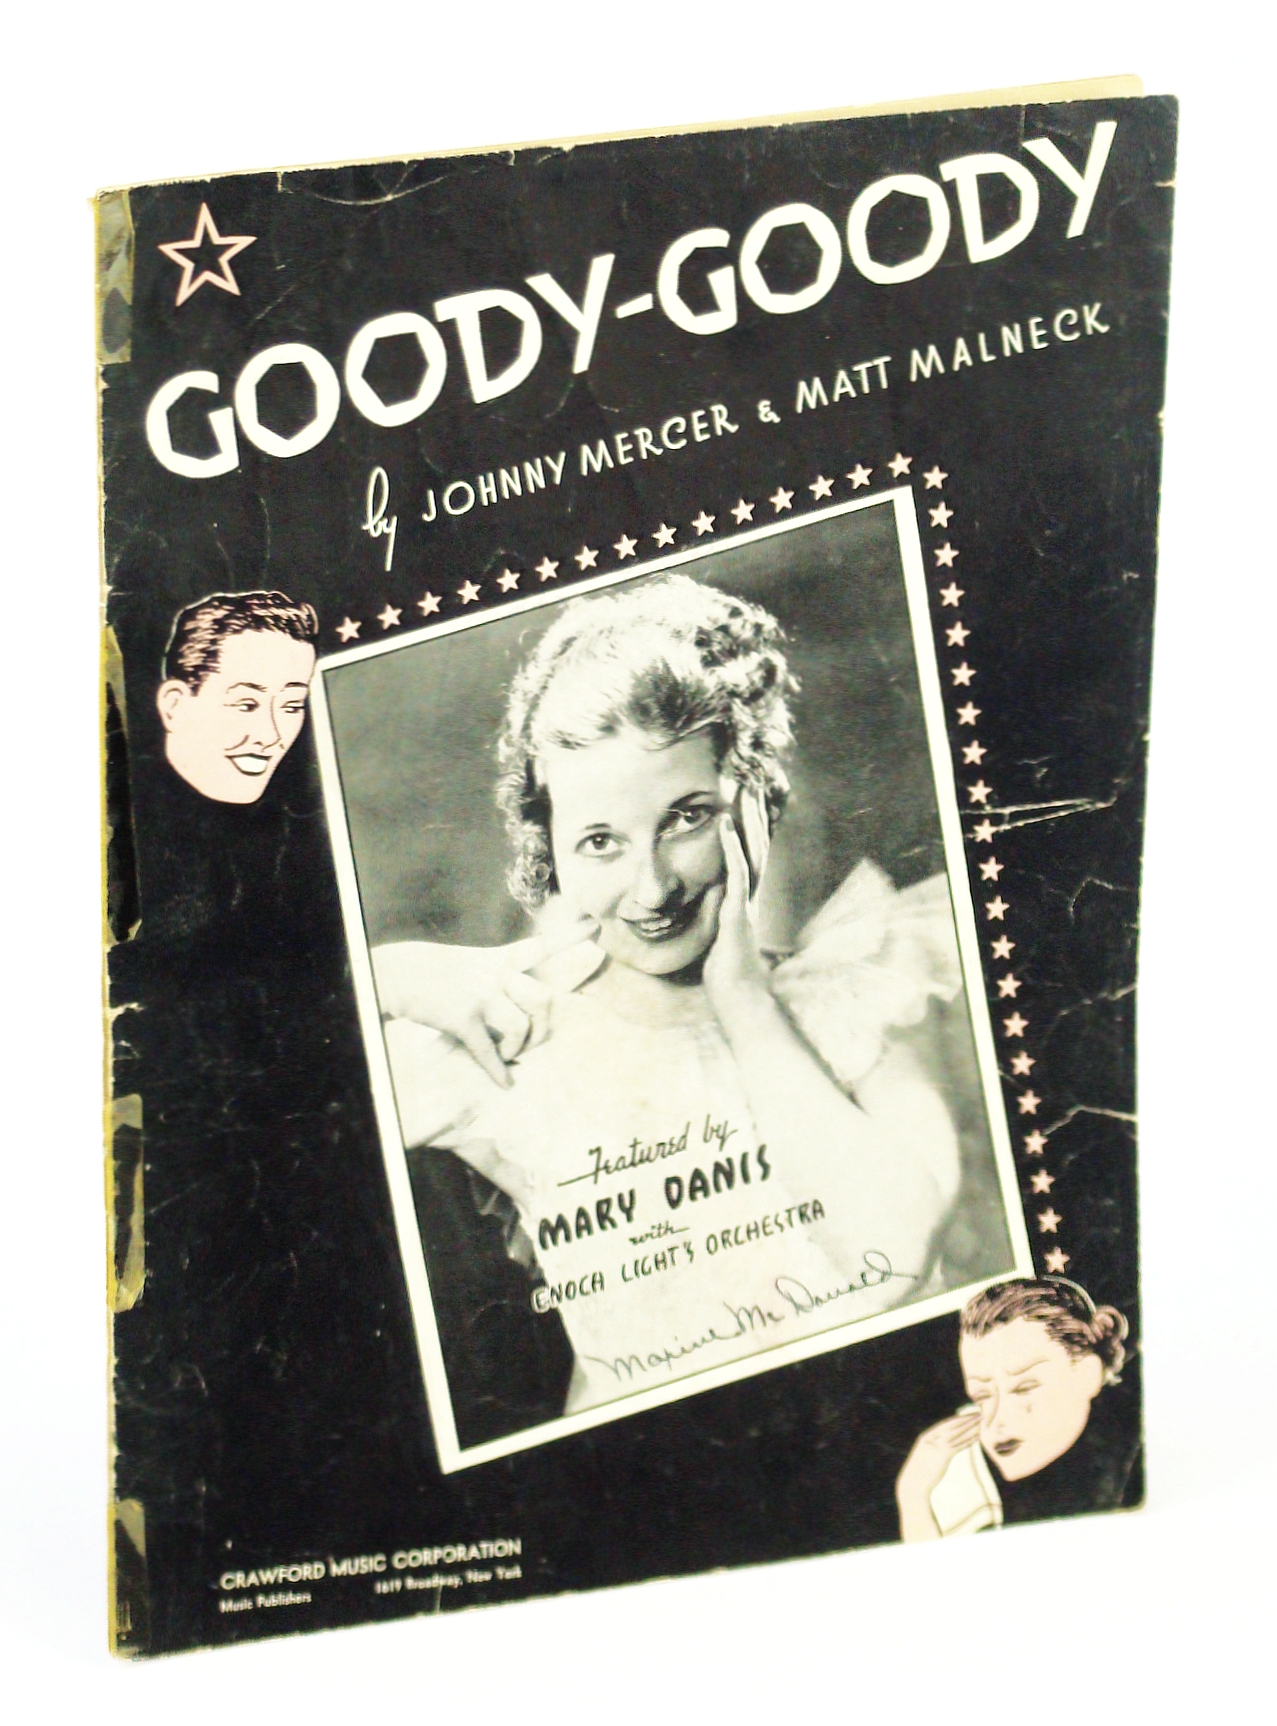 Image for GOODY-GOODY SHEET MUSIC